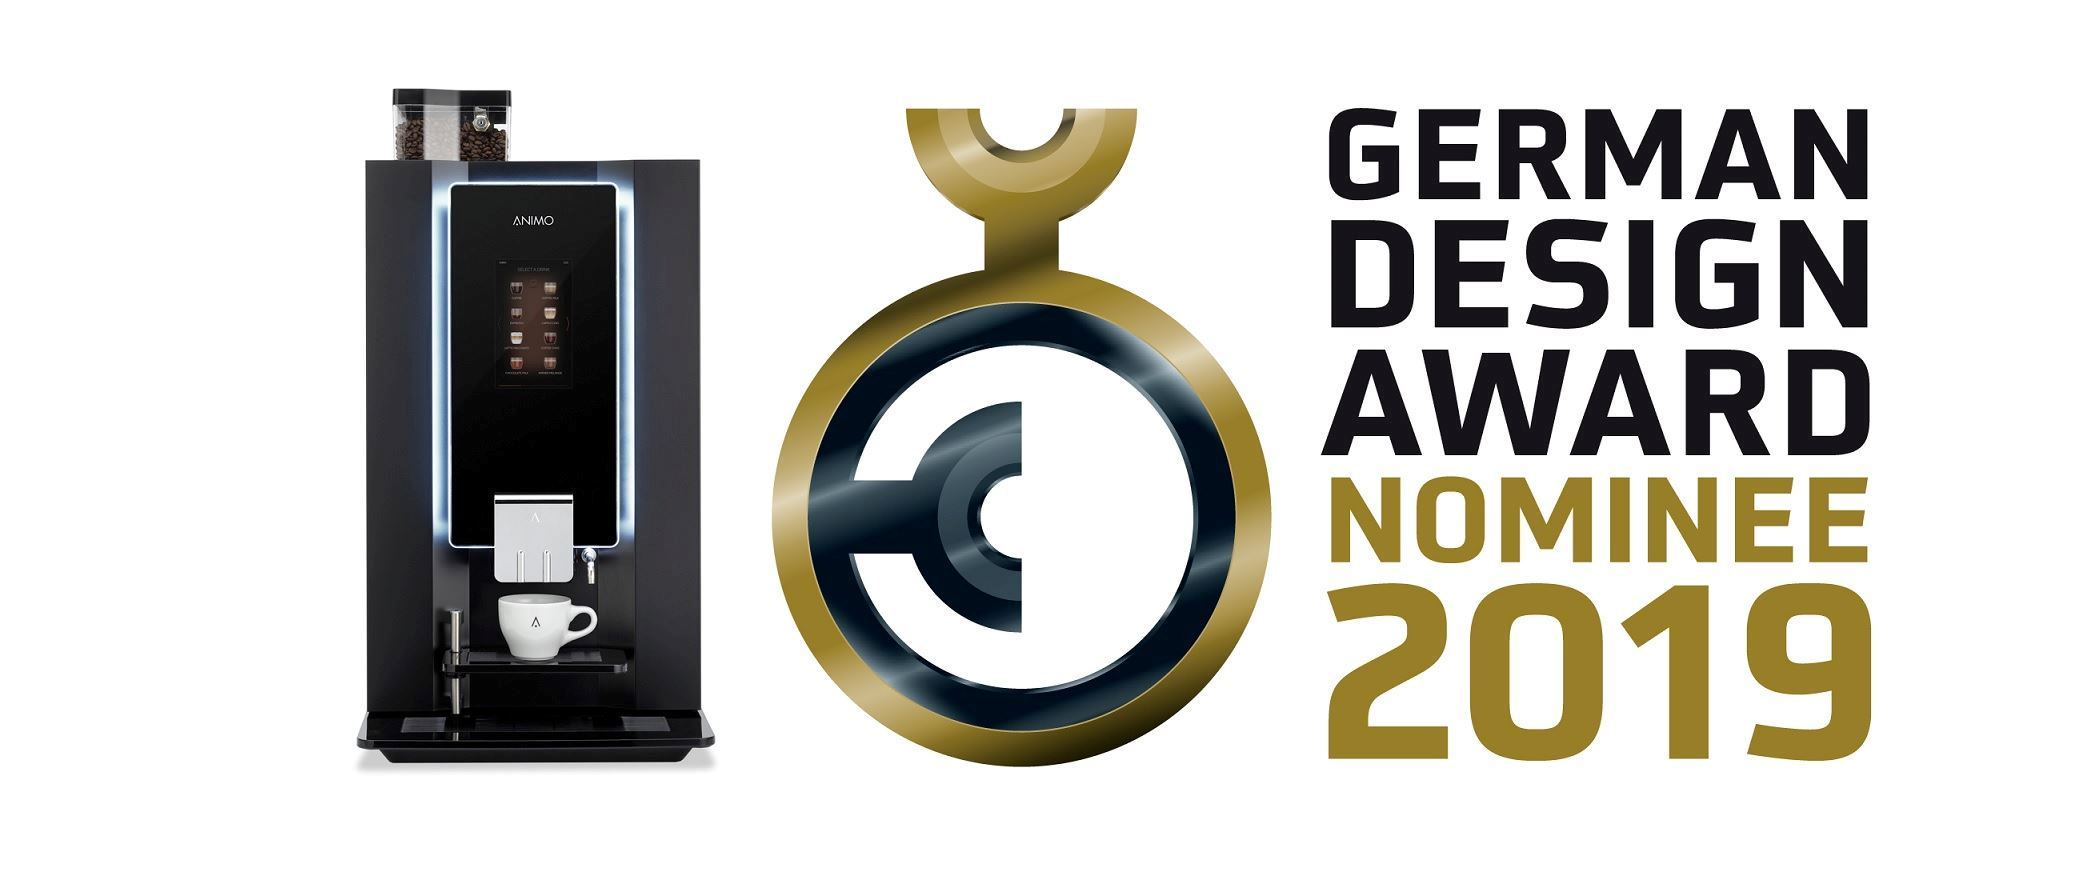 OptiBean Touch nominiert für den German-Design-Award 2019!